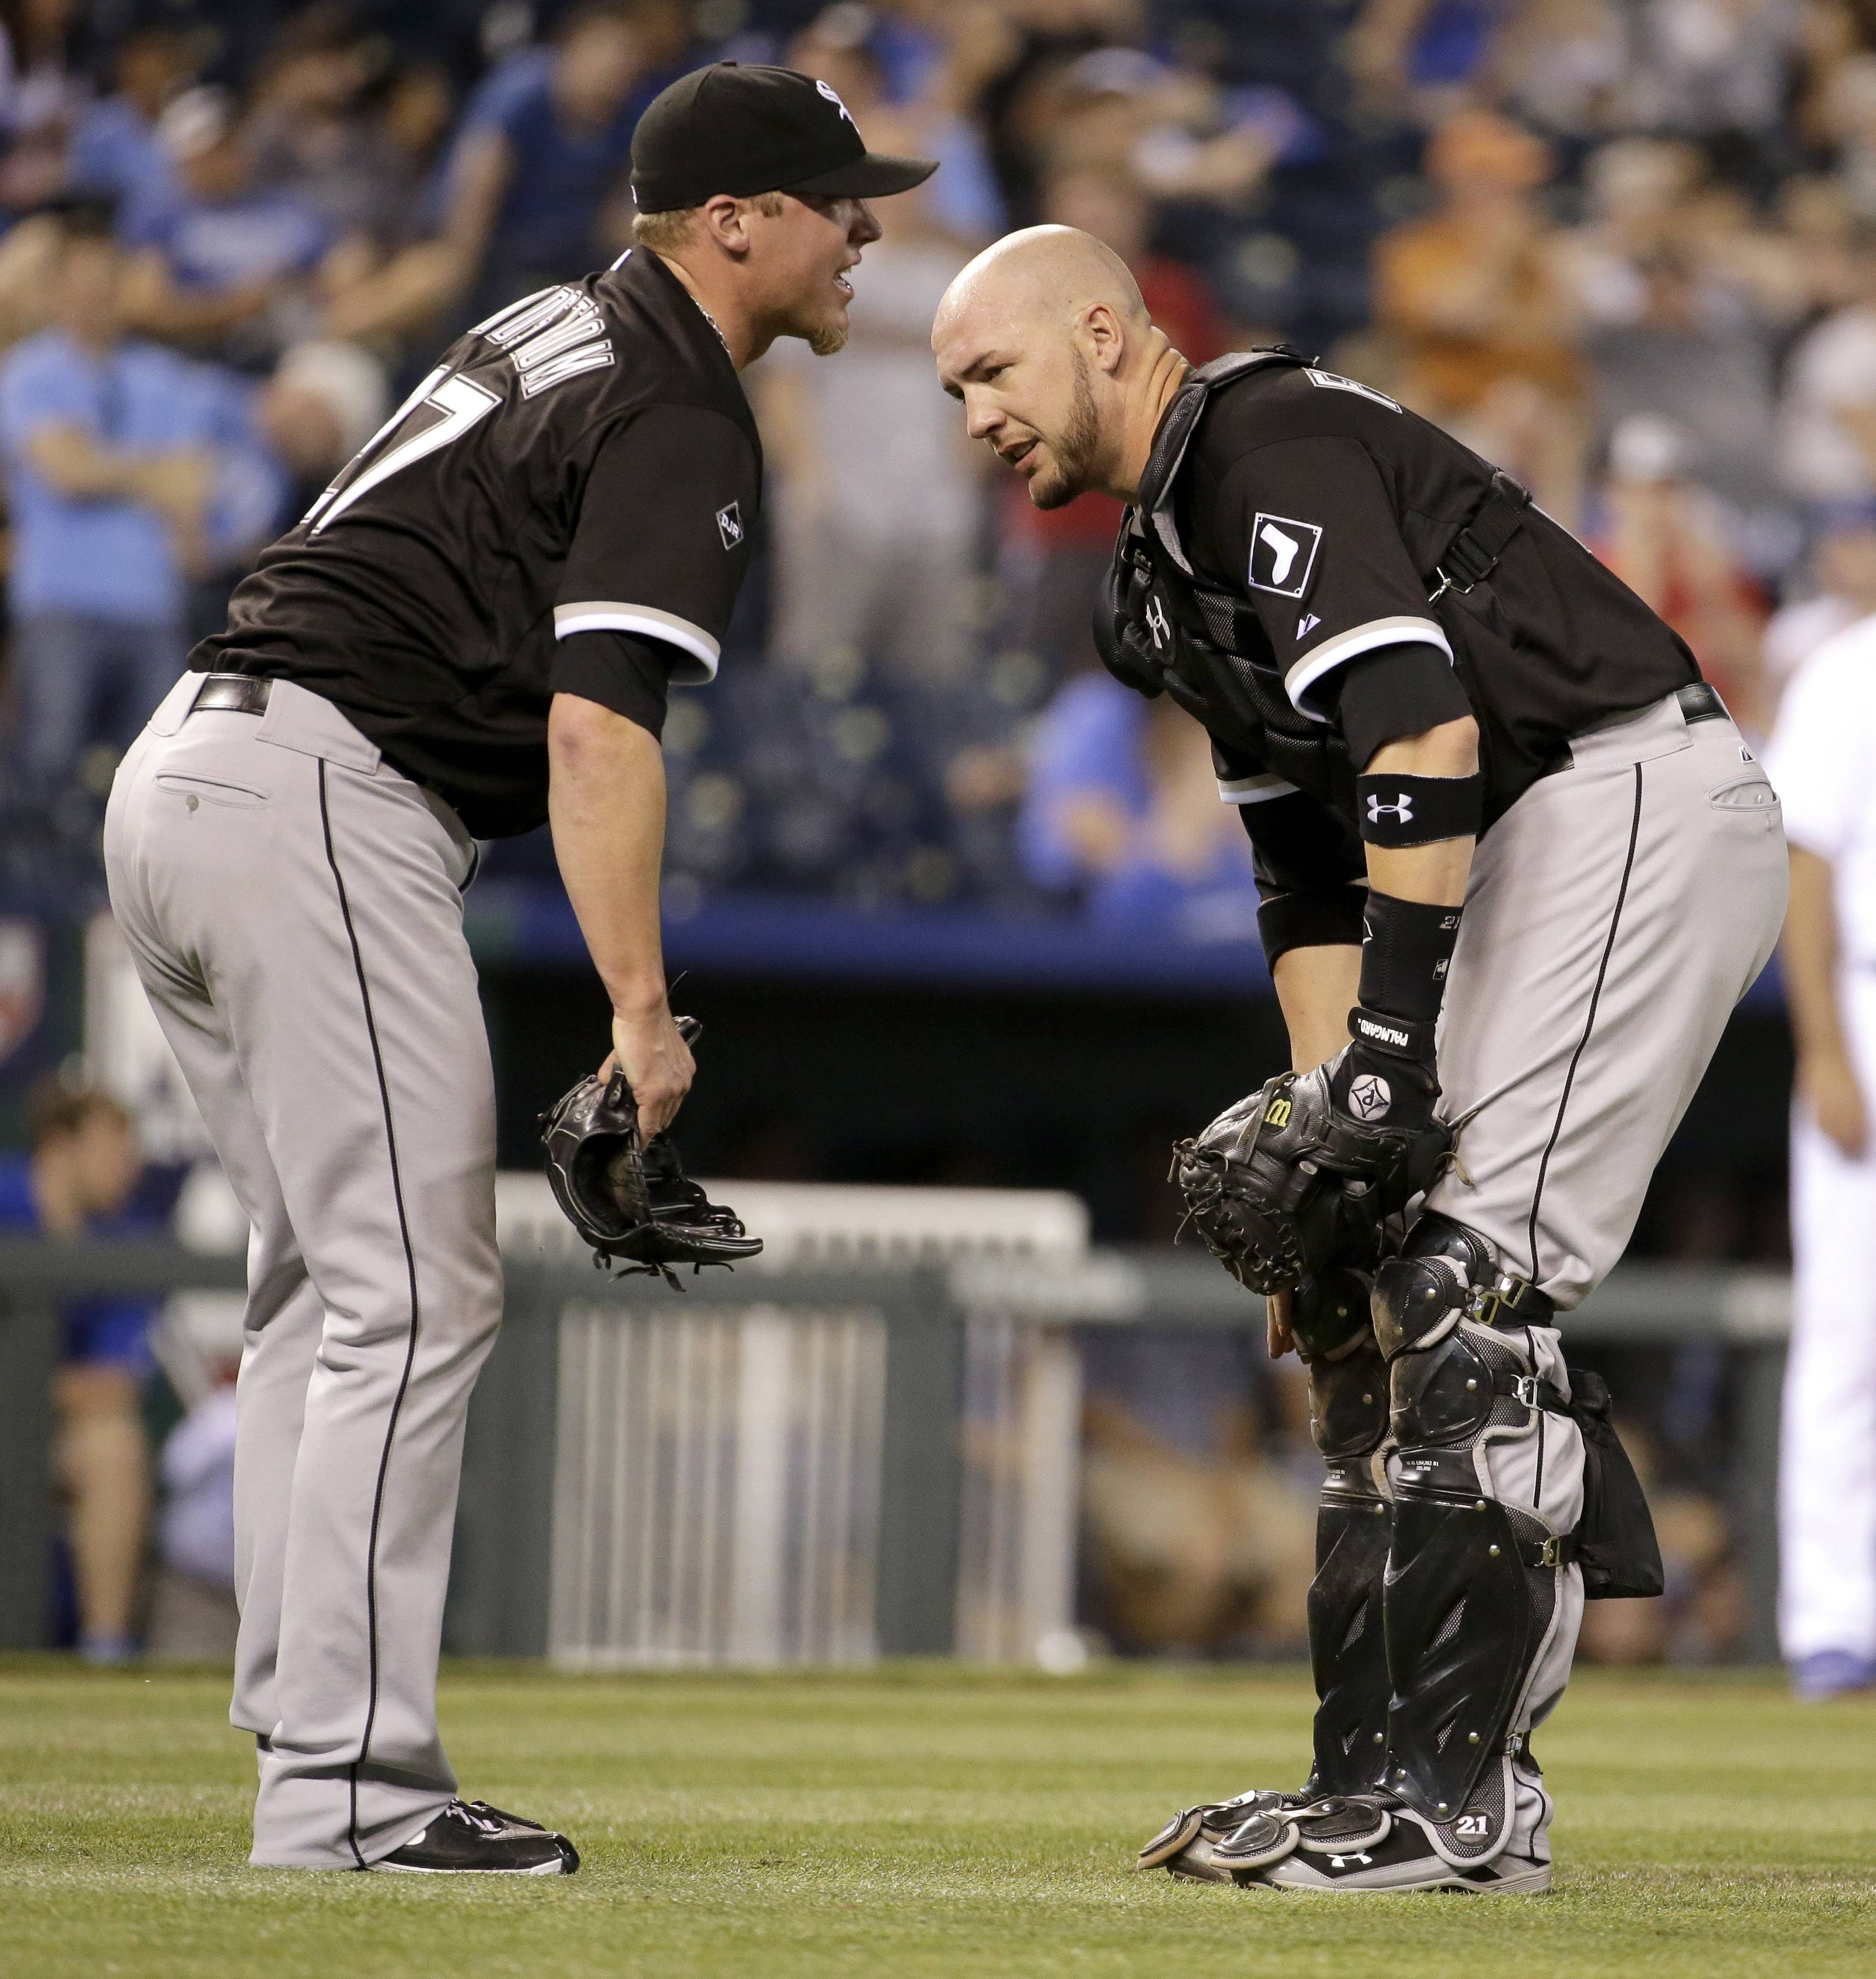 Chicago White Sox relief pitcher Matt Lindstrom, left, reacts  after getting injured during the ninth inning Monday against the Kansas City Royals. The Sox have placed Lindstrom on the 15-day disabled list.